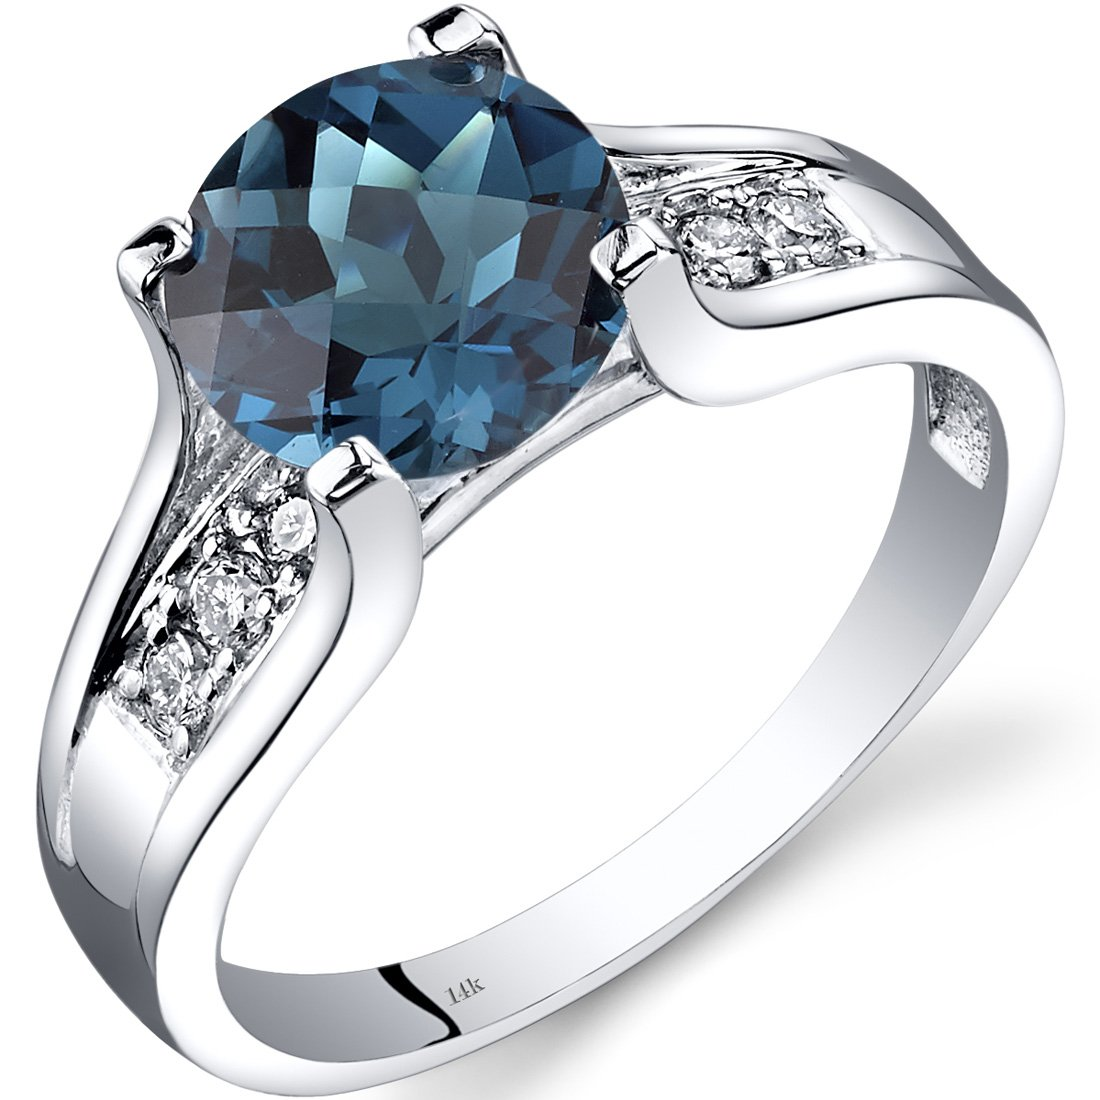 Peora 14K White Gold London Blue Topaz Diamond Cocktail Ring 2.25 Carats Size 5 by Peora